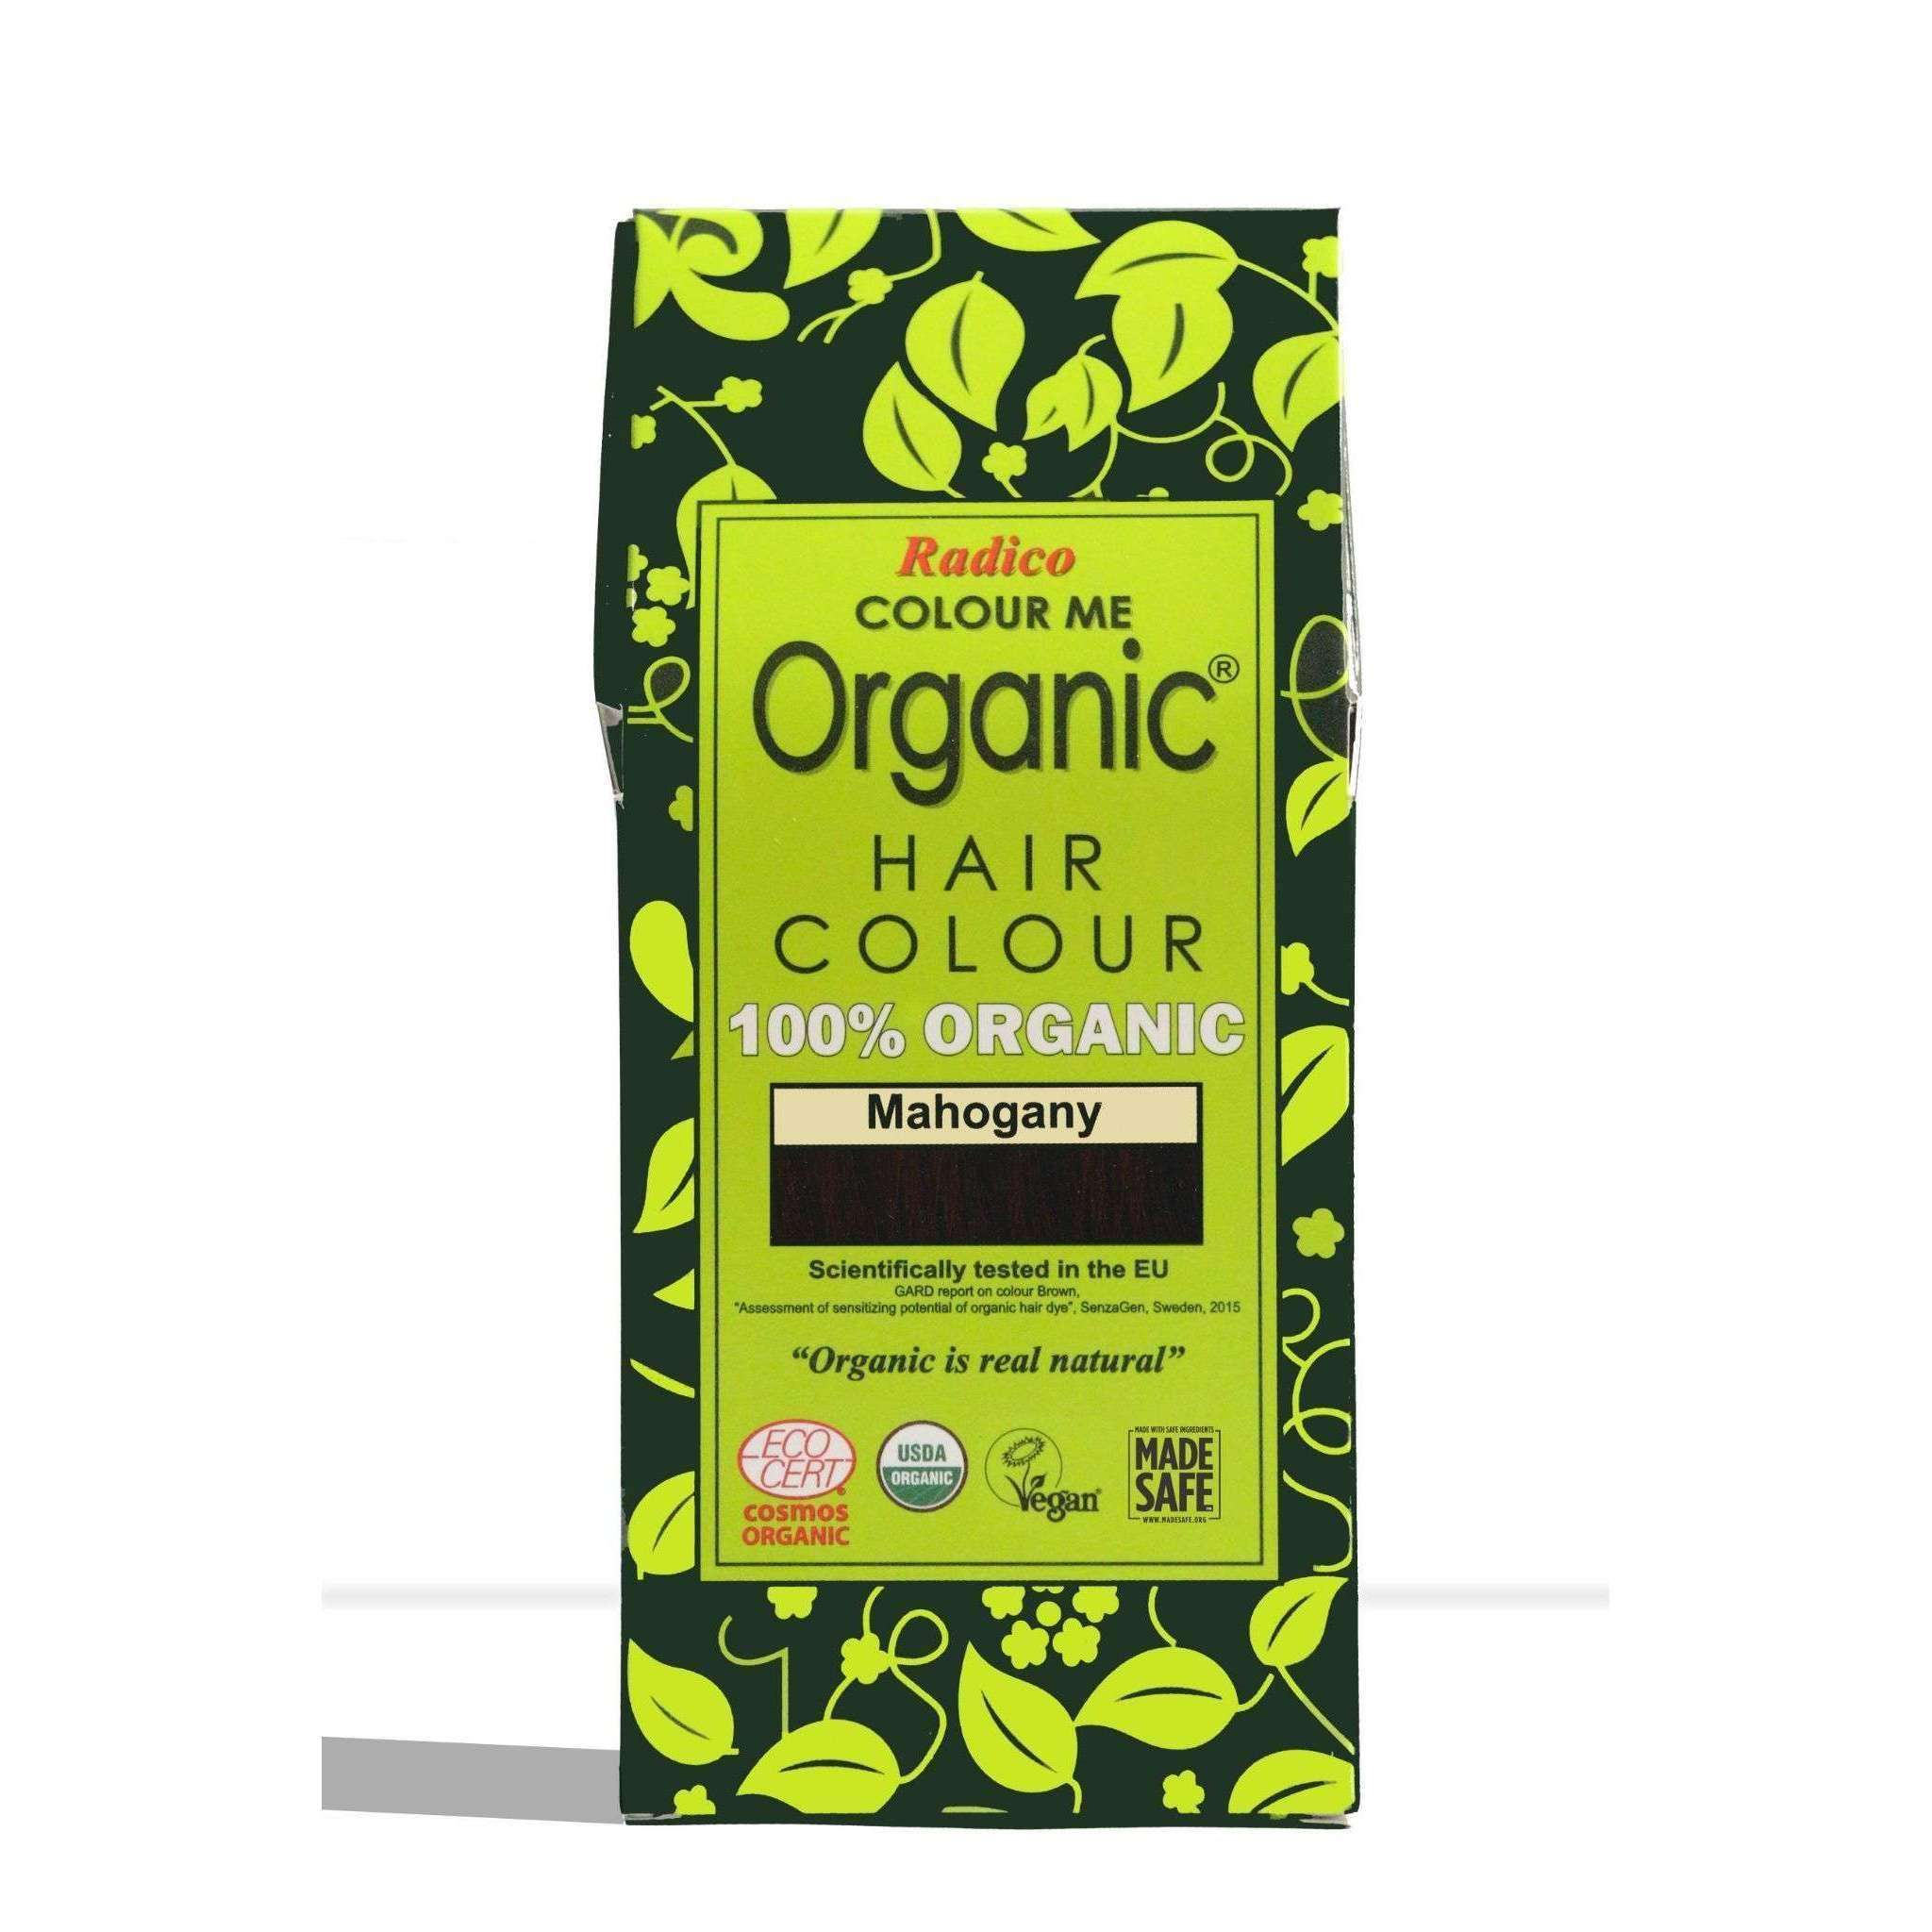 Organic Hair Colour - Mahogany